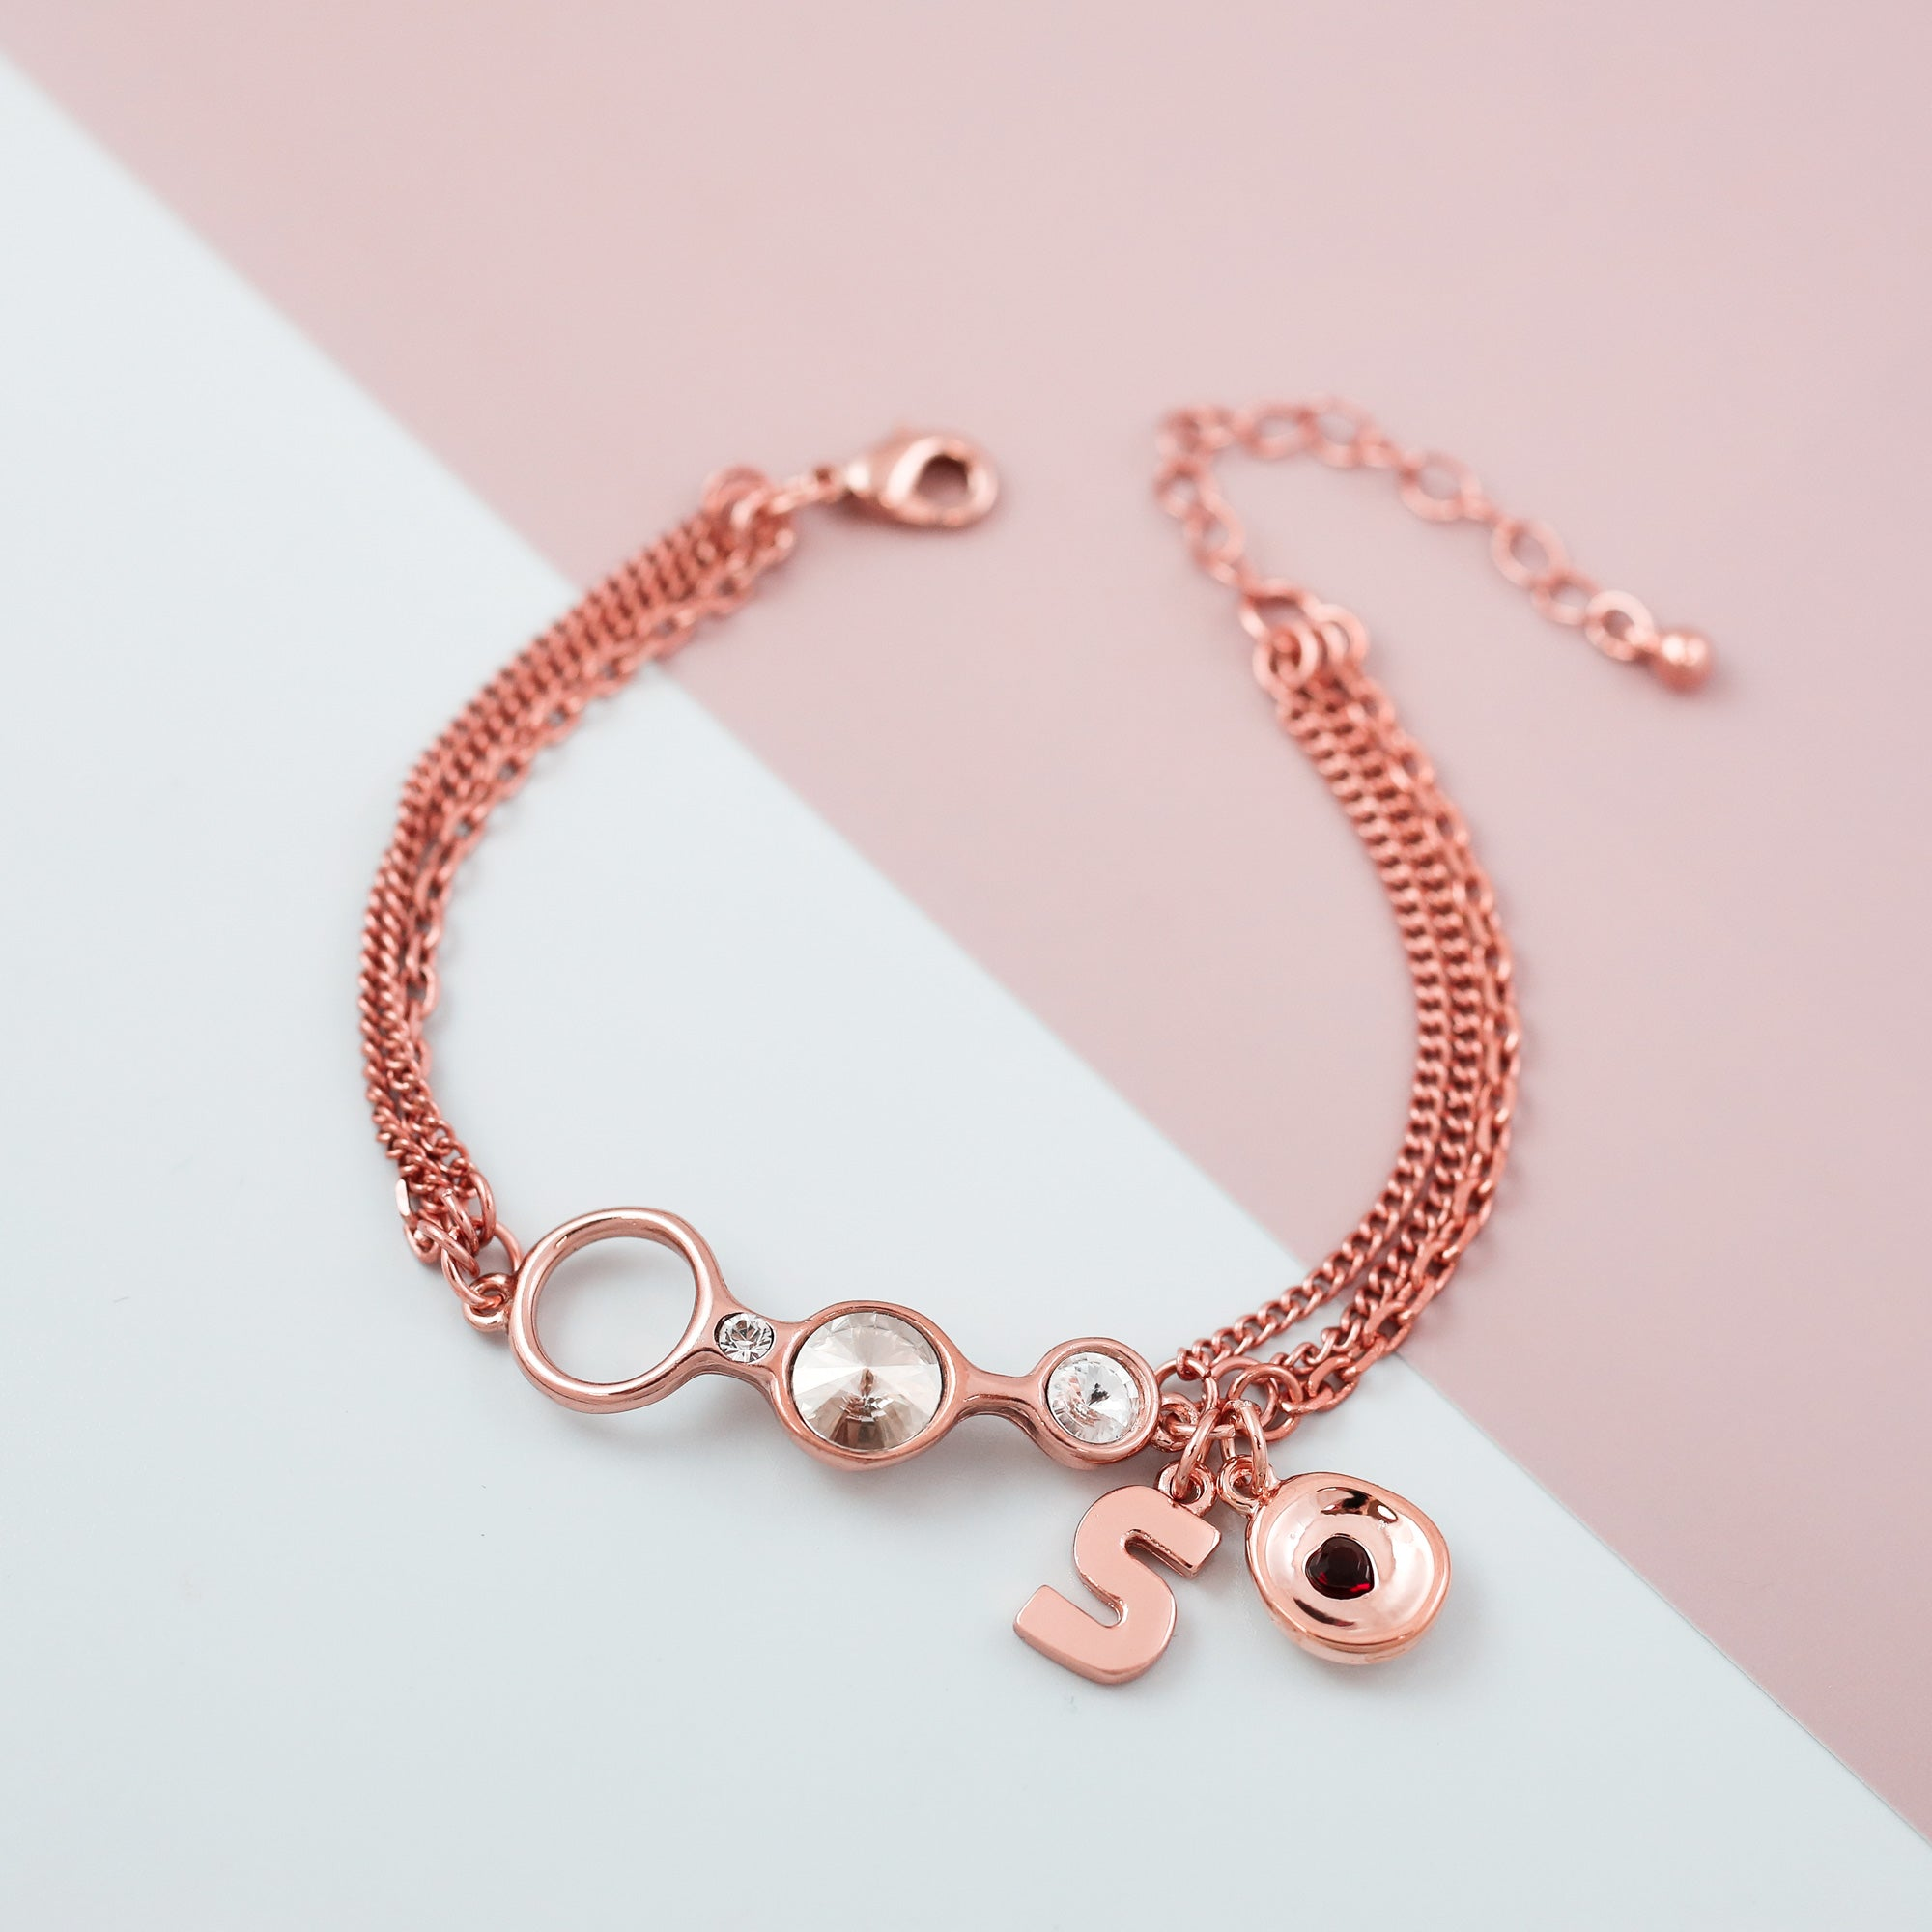 Charm Friendship Bracelet Rose Gold & Crystal Silver Shade